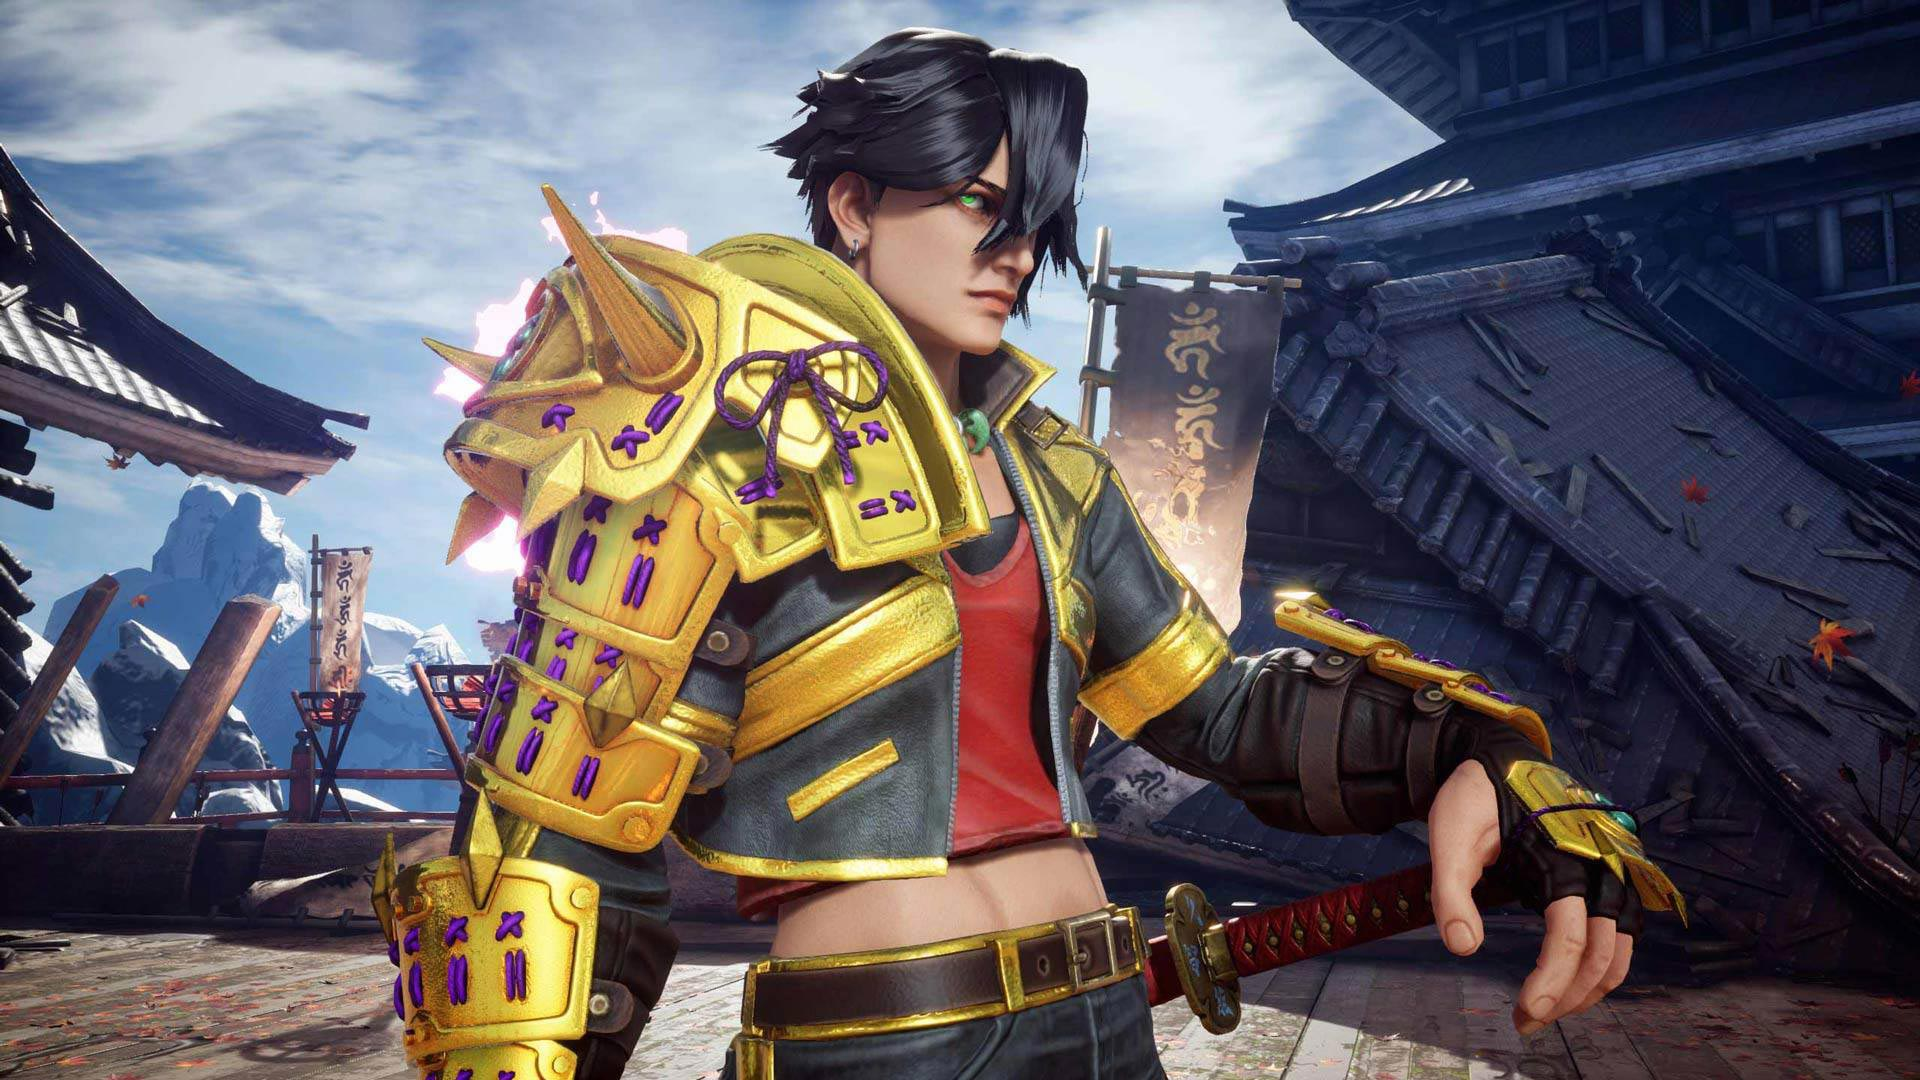 fighting ex layer arrives june 28th on playstation 4 new screens artwork gameplay video fighting ex layer arrives june 28th on